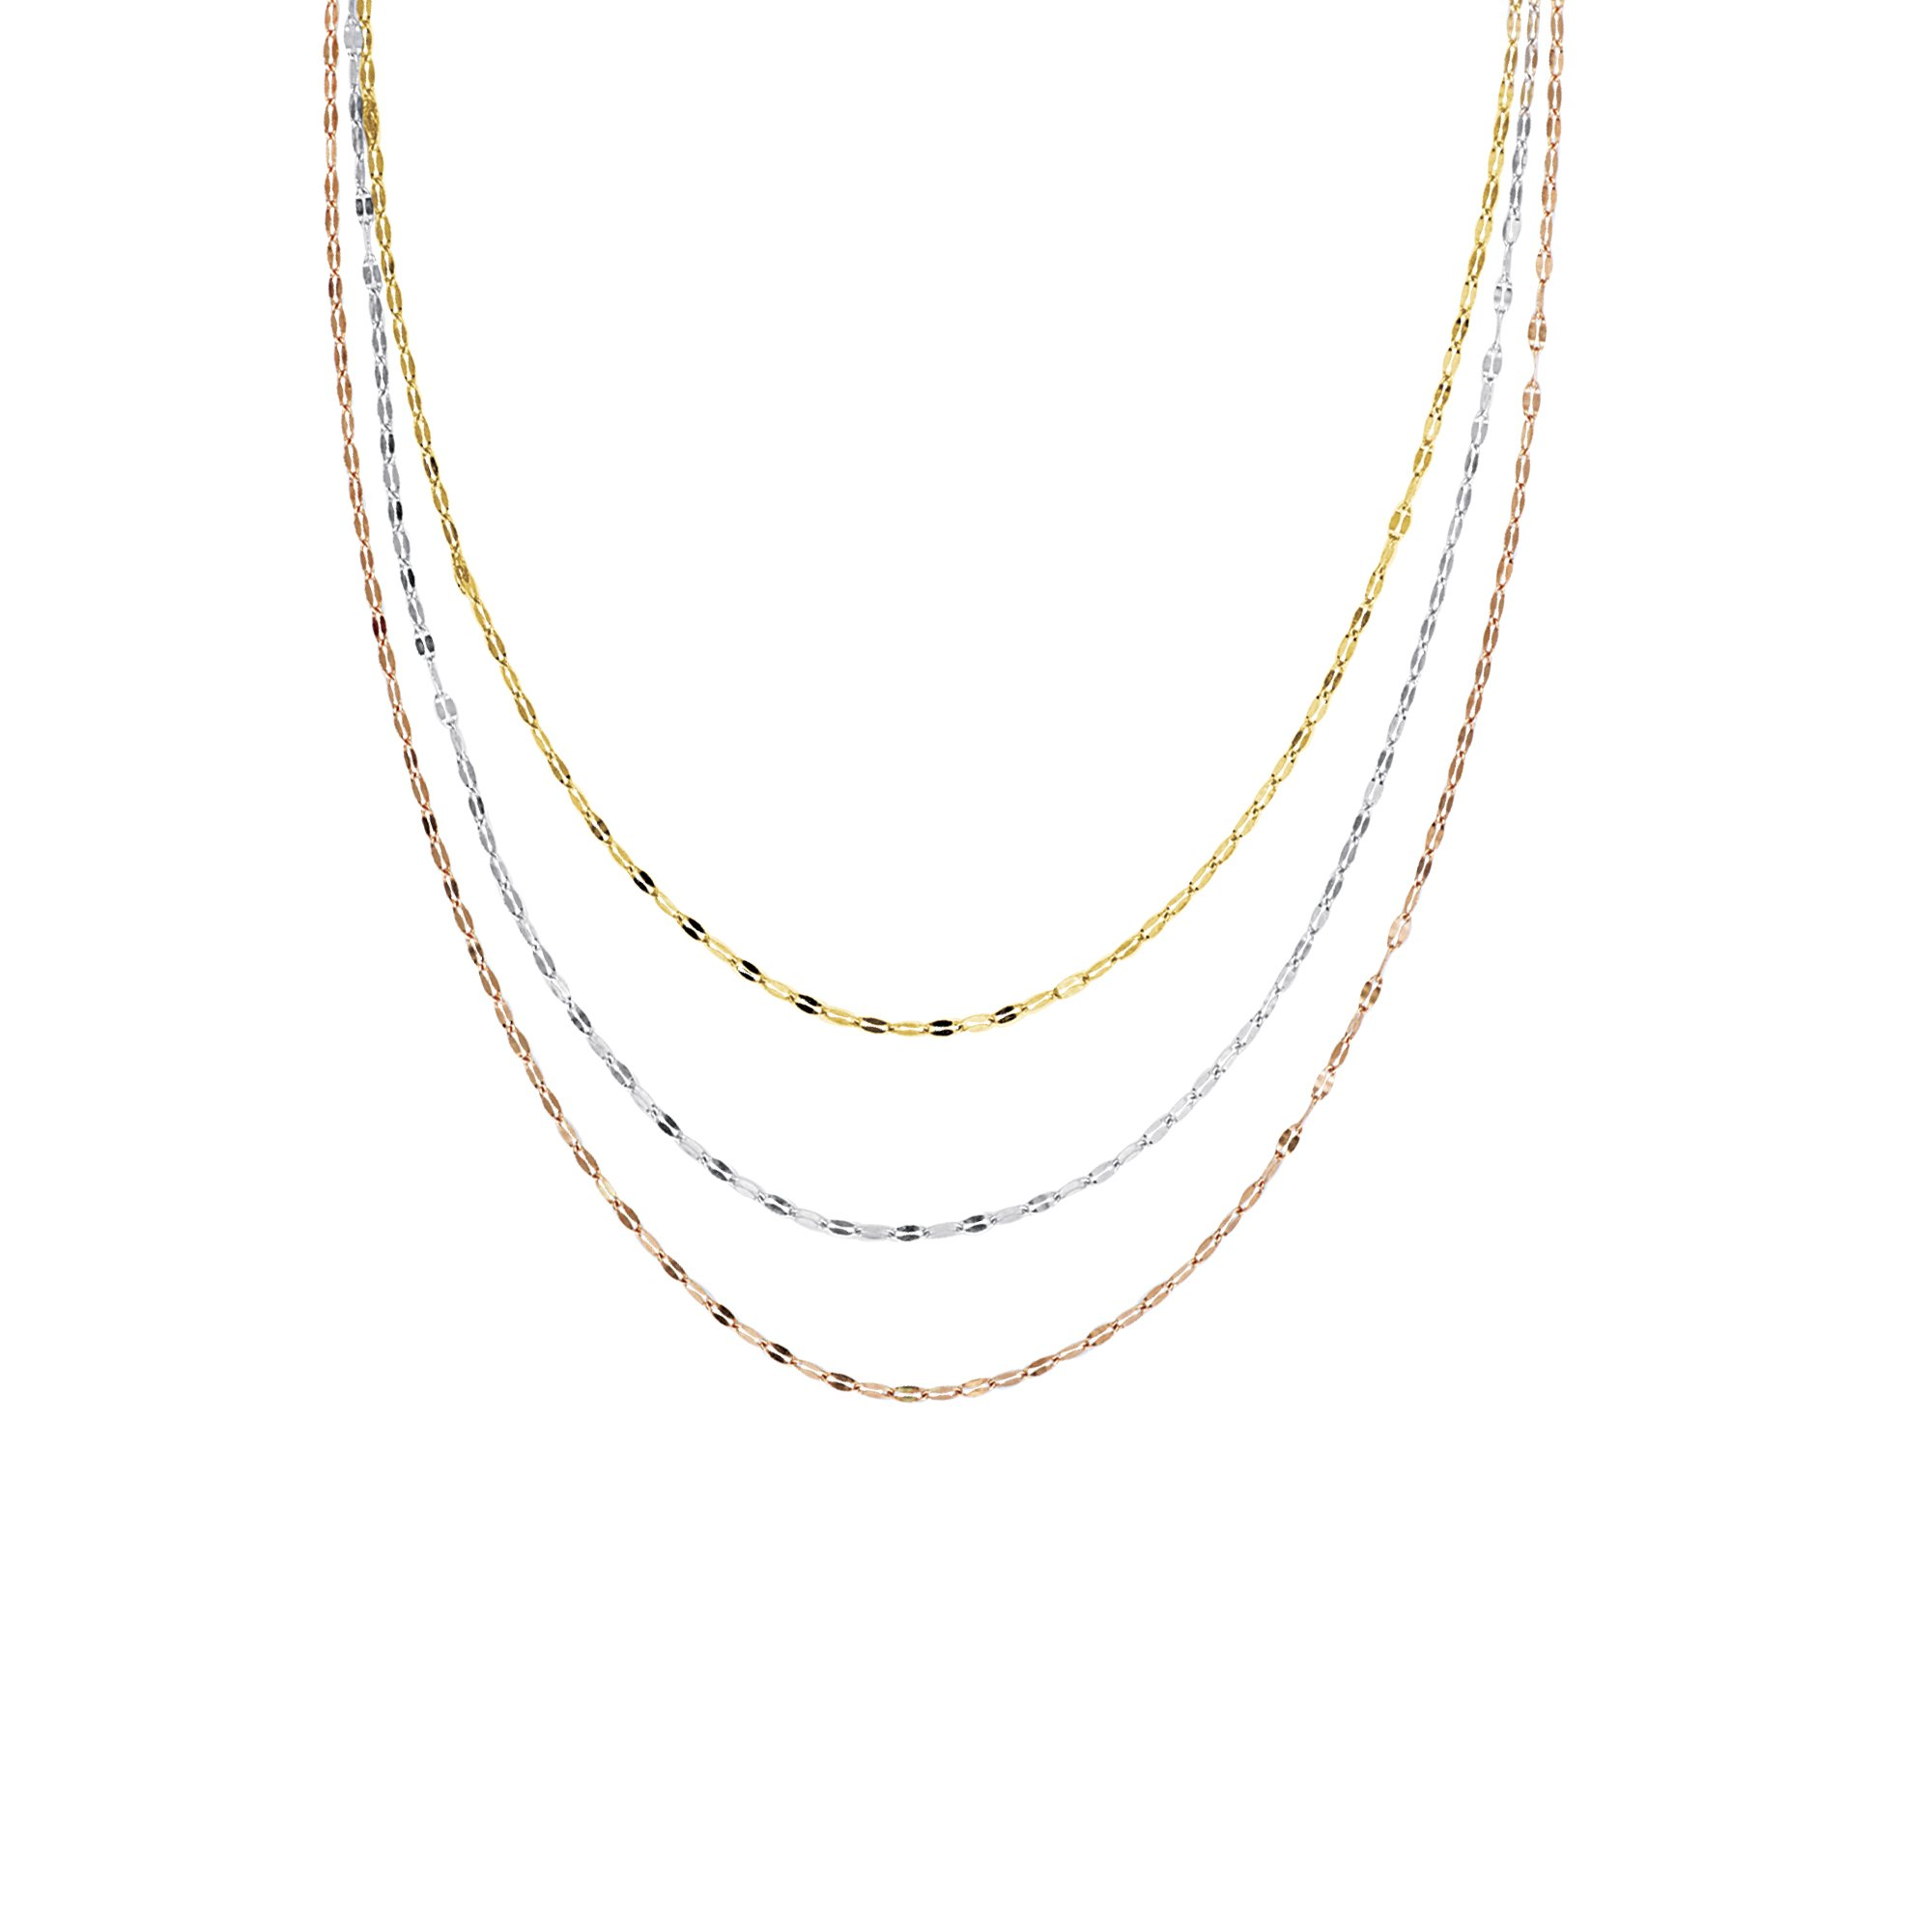 Hawley St 14k Tri-color Gold Hammered Mariner Chain Necklace